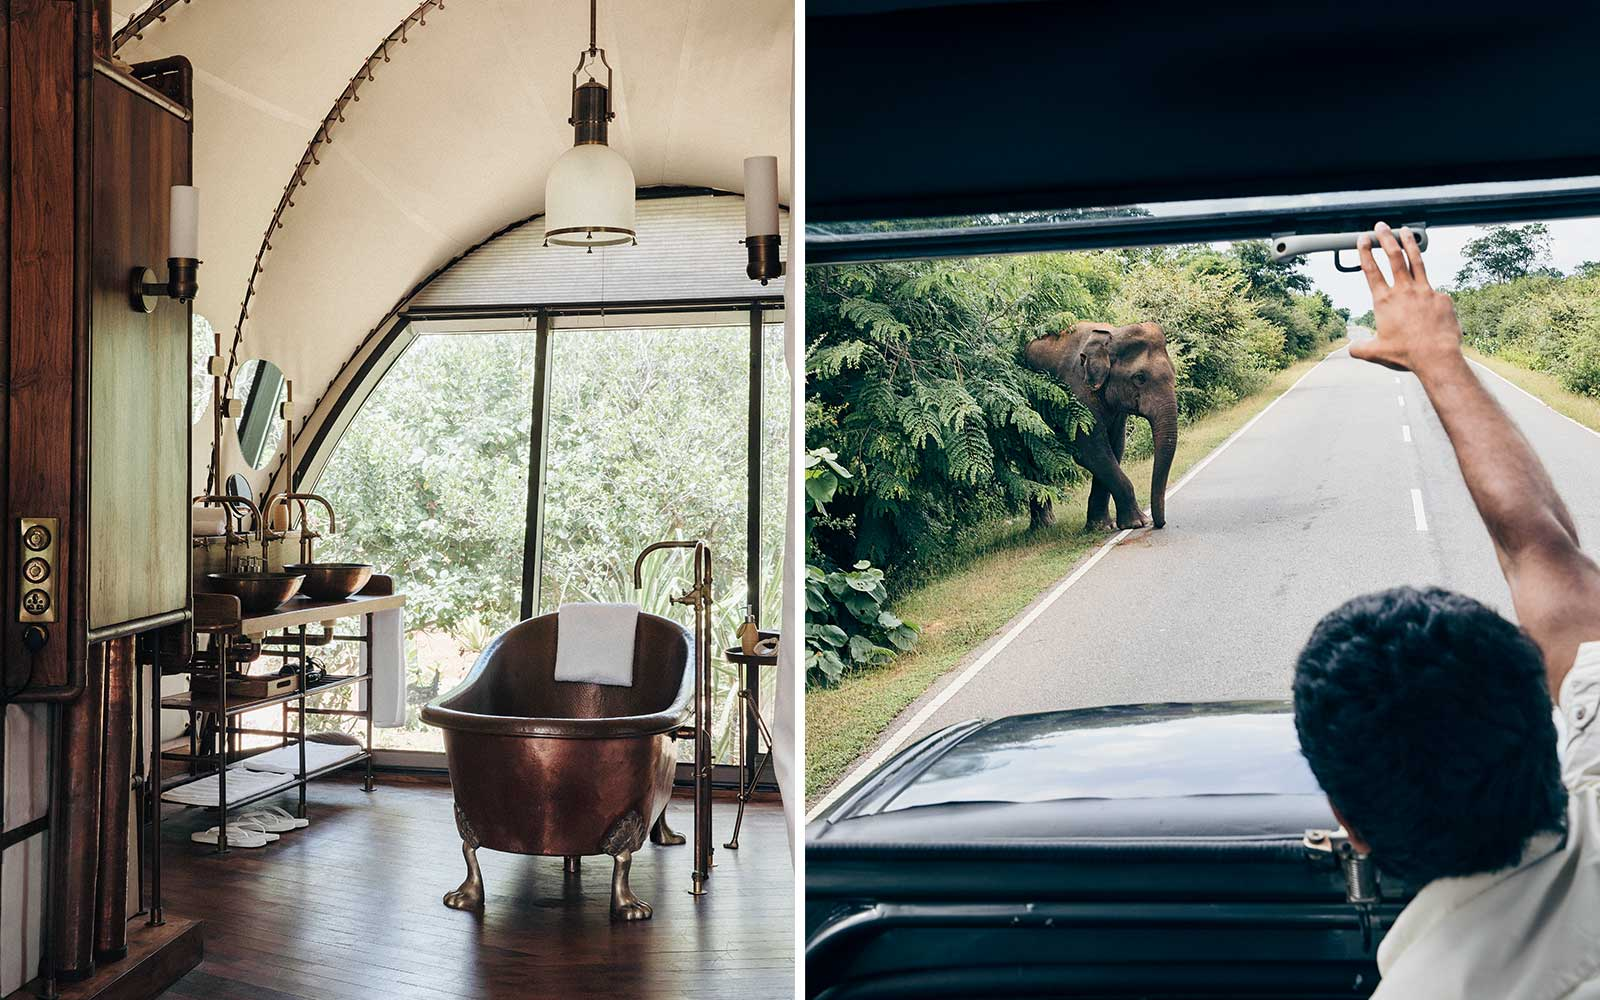 Wild Coast tented lodge in Sri Lanka offers safari experience to see elephants and leopards